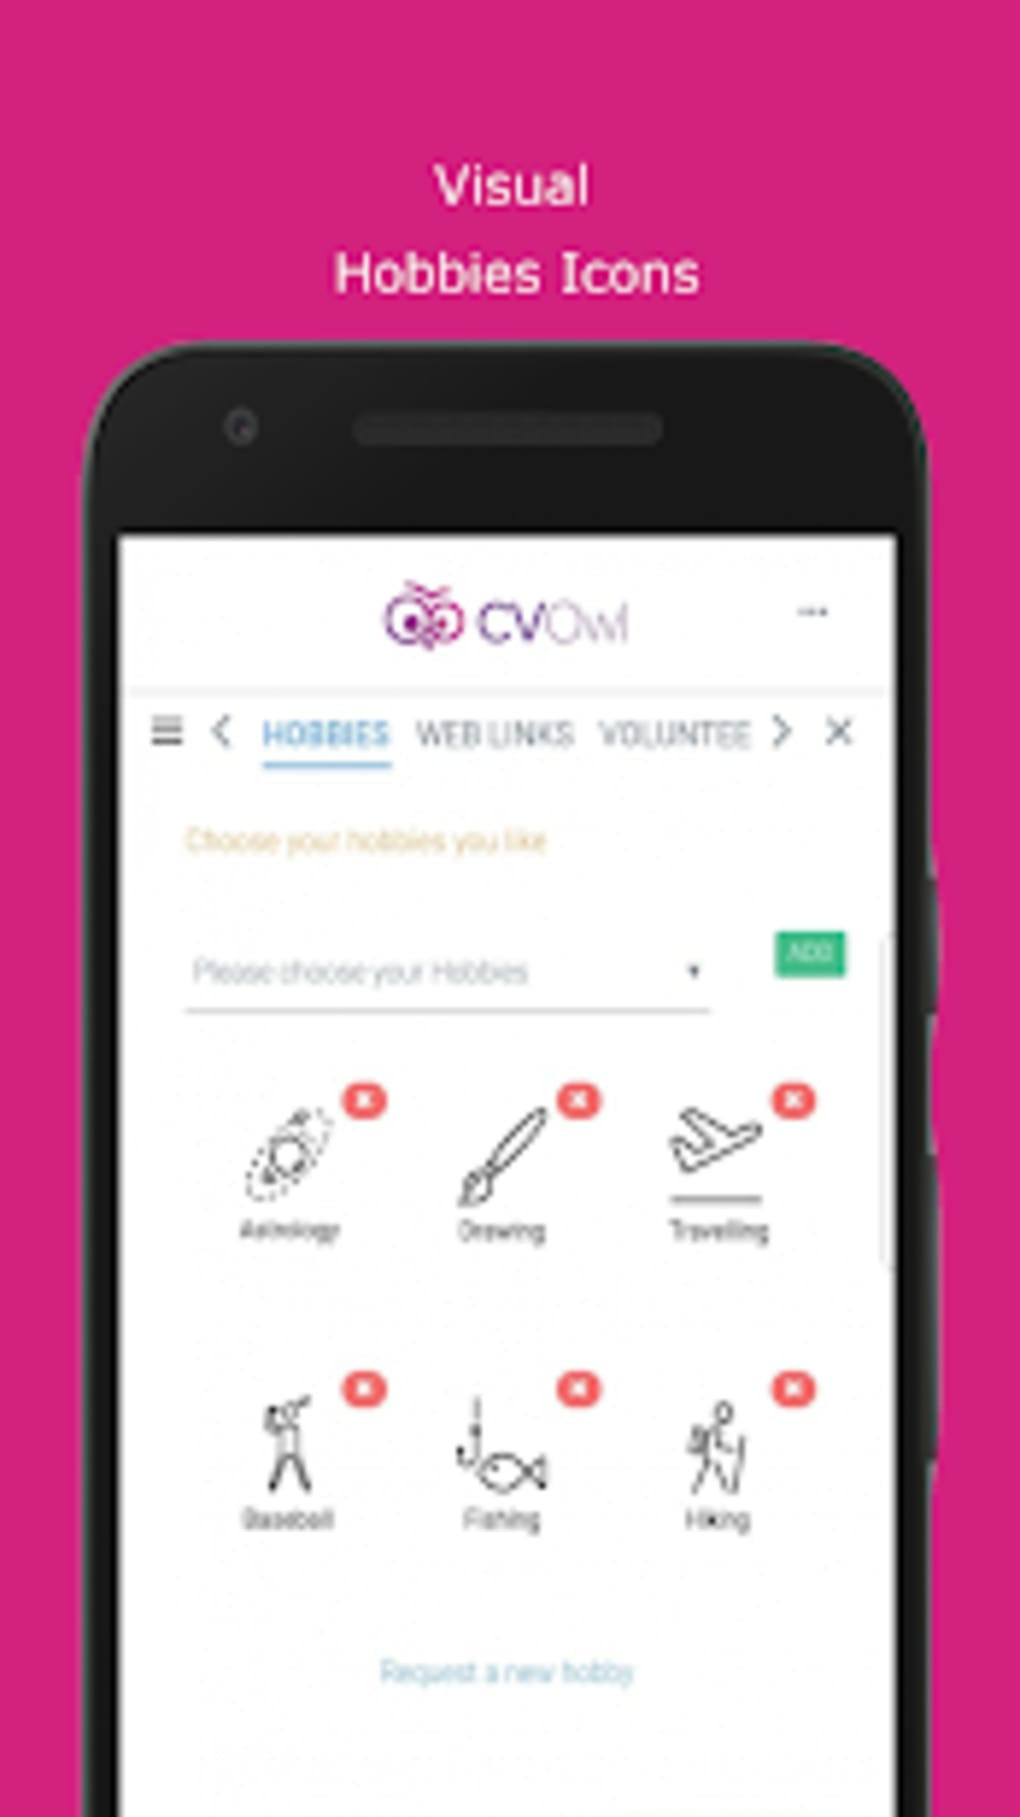 cv owl free resume builder cv maker for android